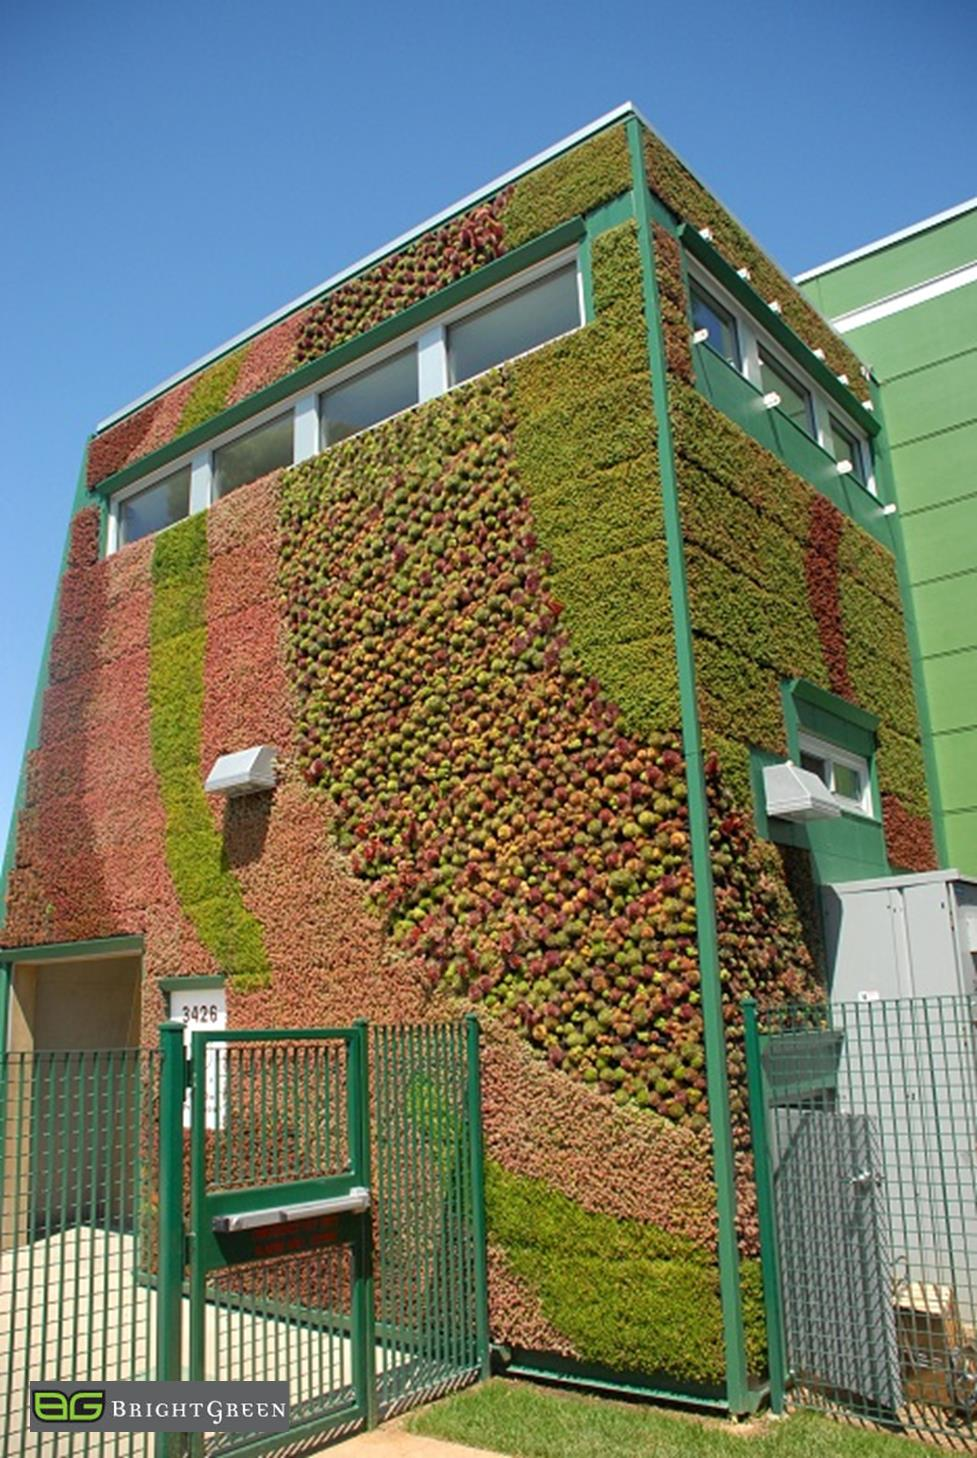 Edible Walls - Edible Gardens In A Box